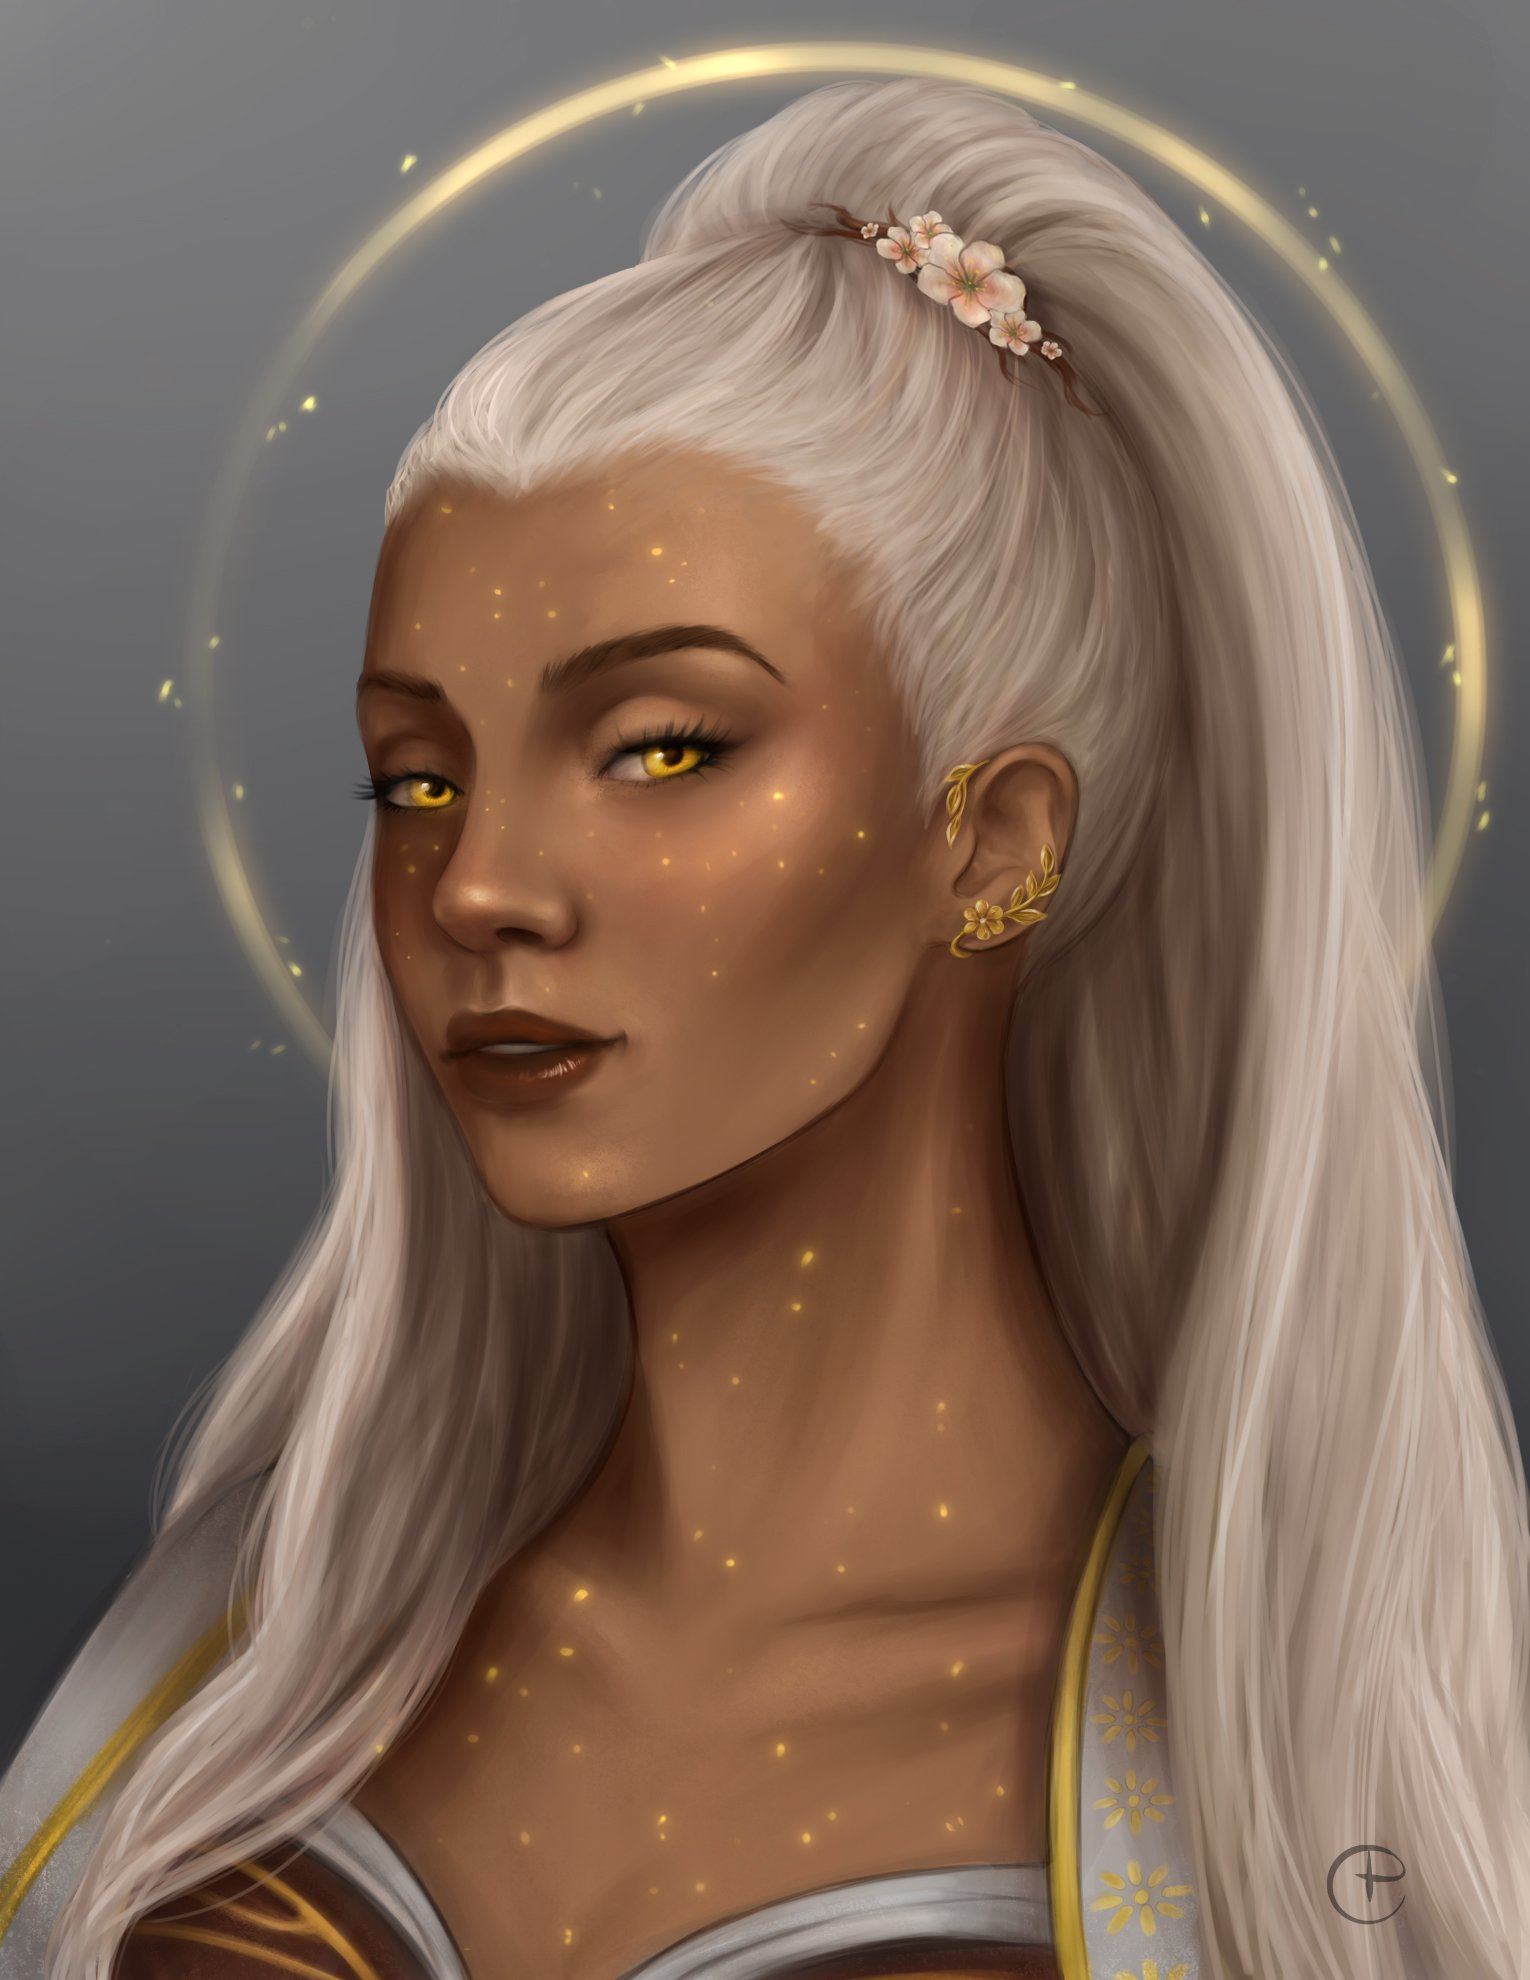 Ep 74 - Guess ill add to the pile of Reani fanart, she is just too pretty ok?! #CriticalRole #criticalrolefanart https://t.co/JvsePHSyNA